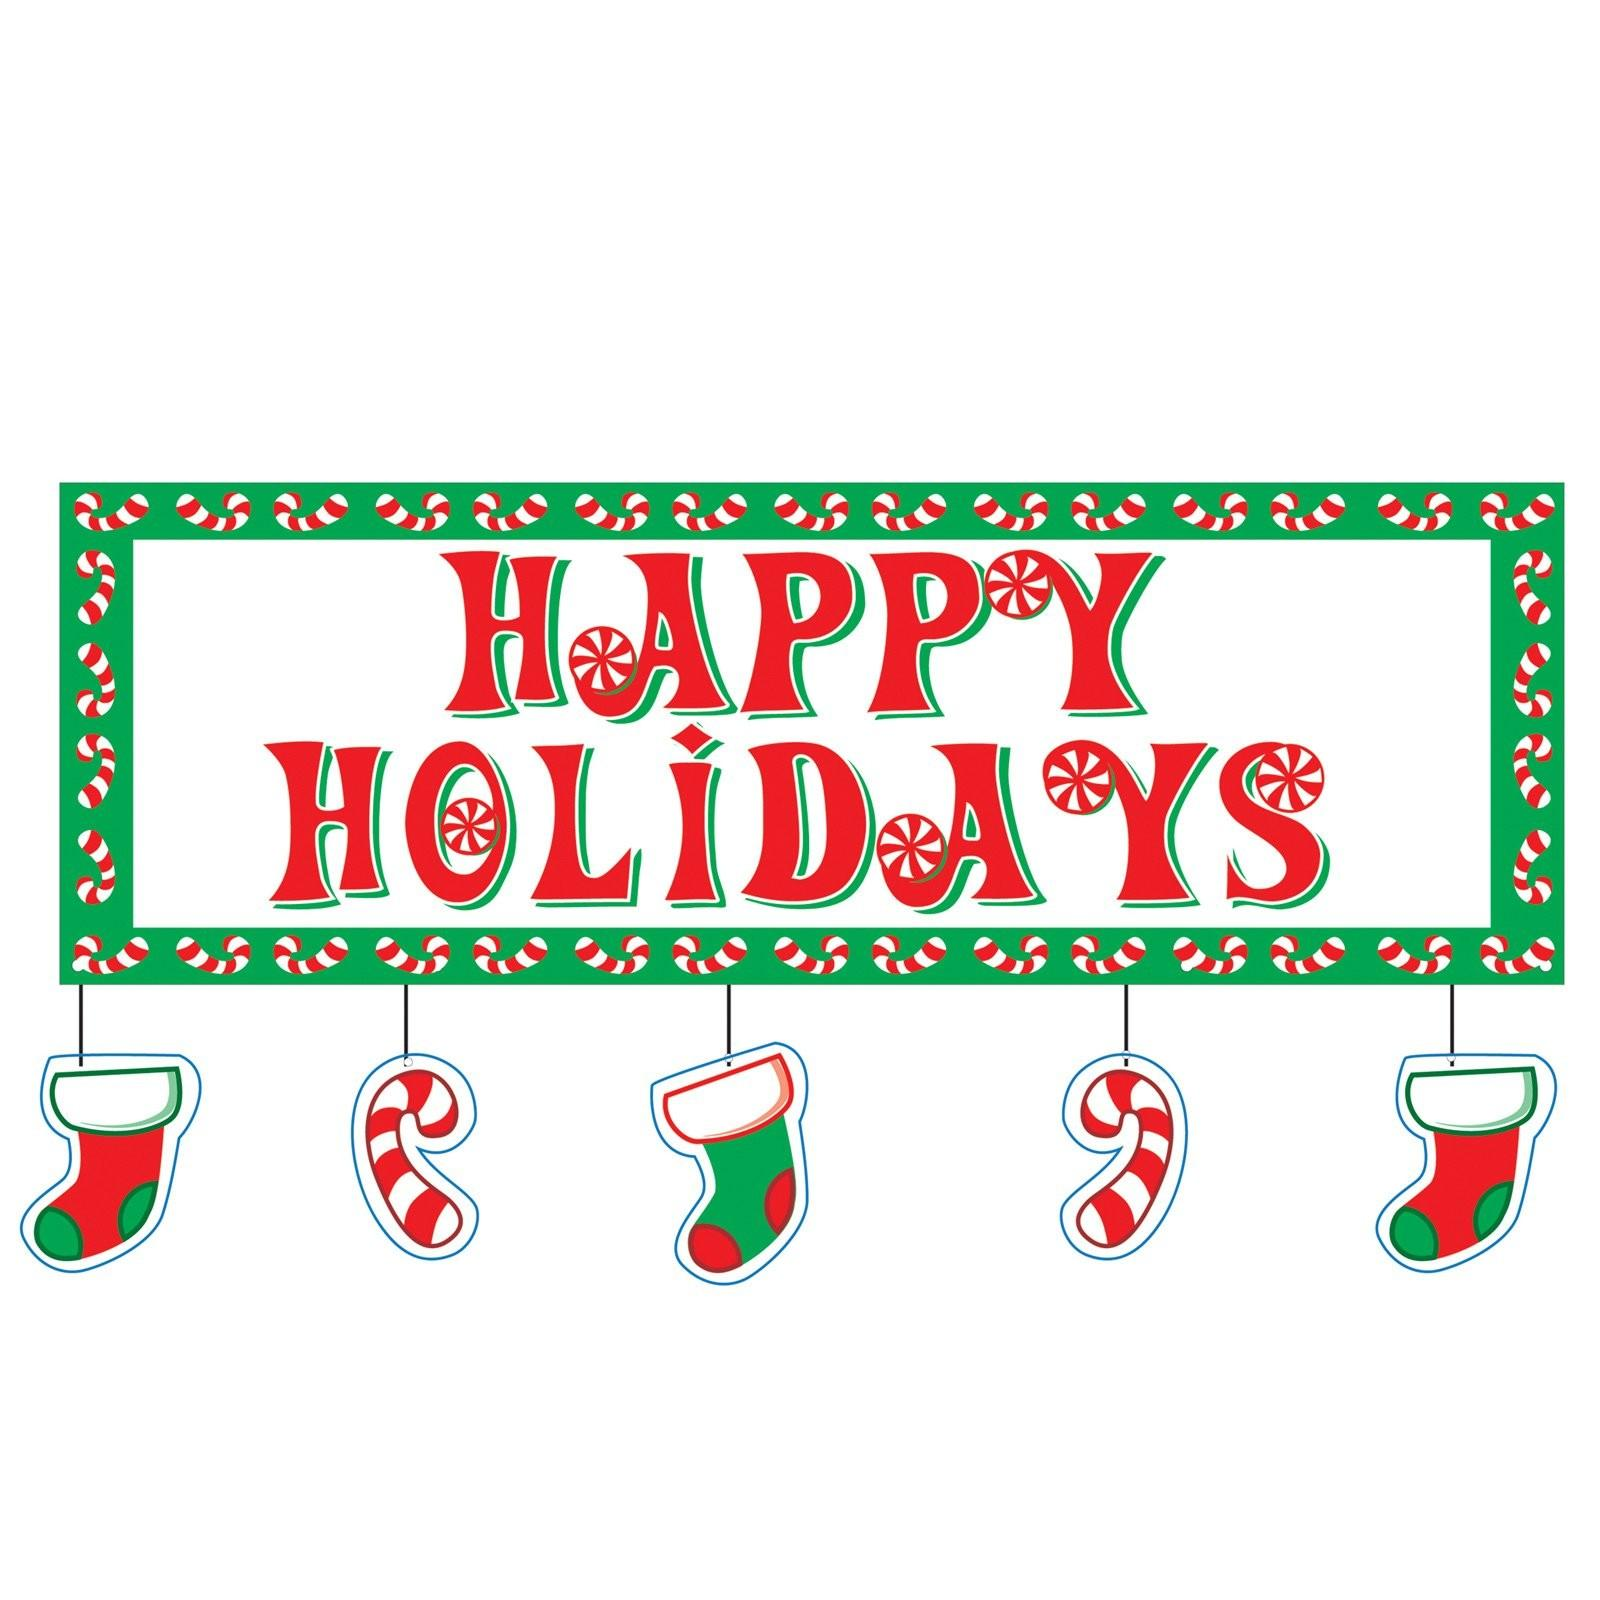 Happy Holidays Banners New Fashion Arrivals Styles